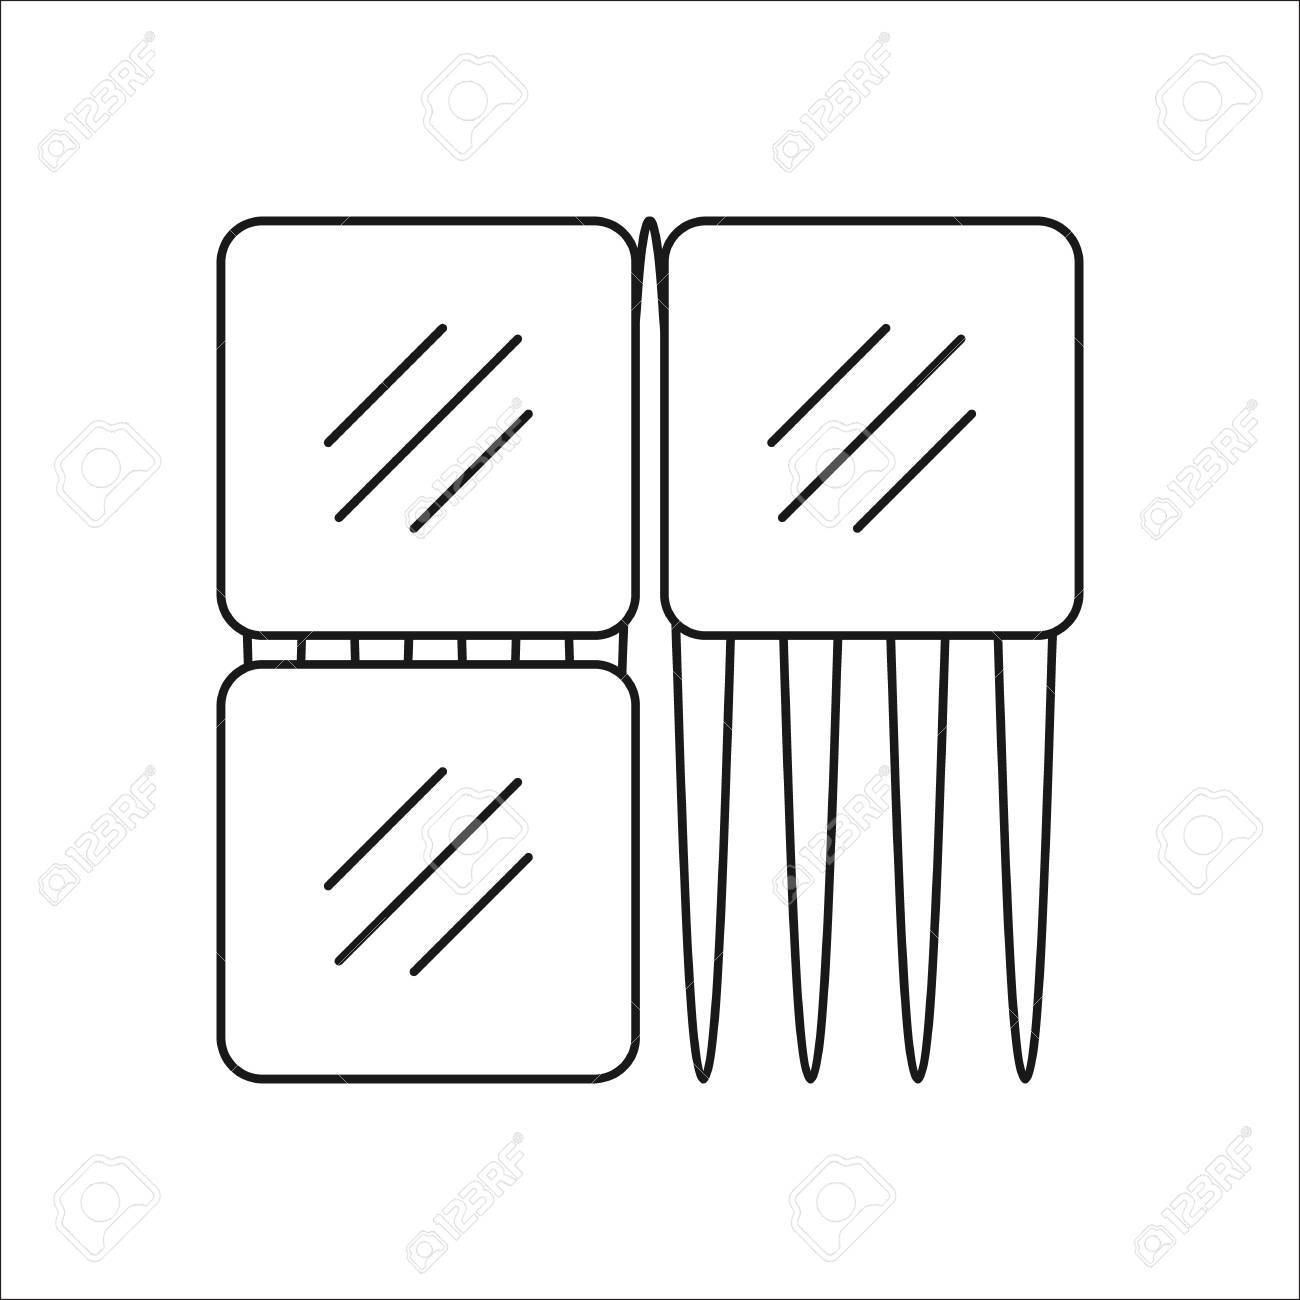 tile adhesive symbol sign line icon on background